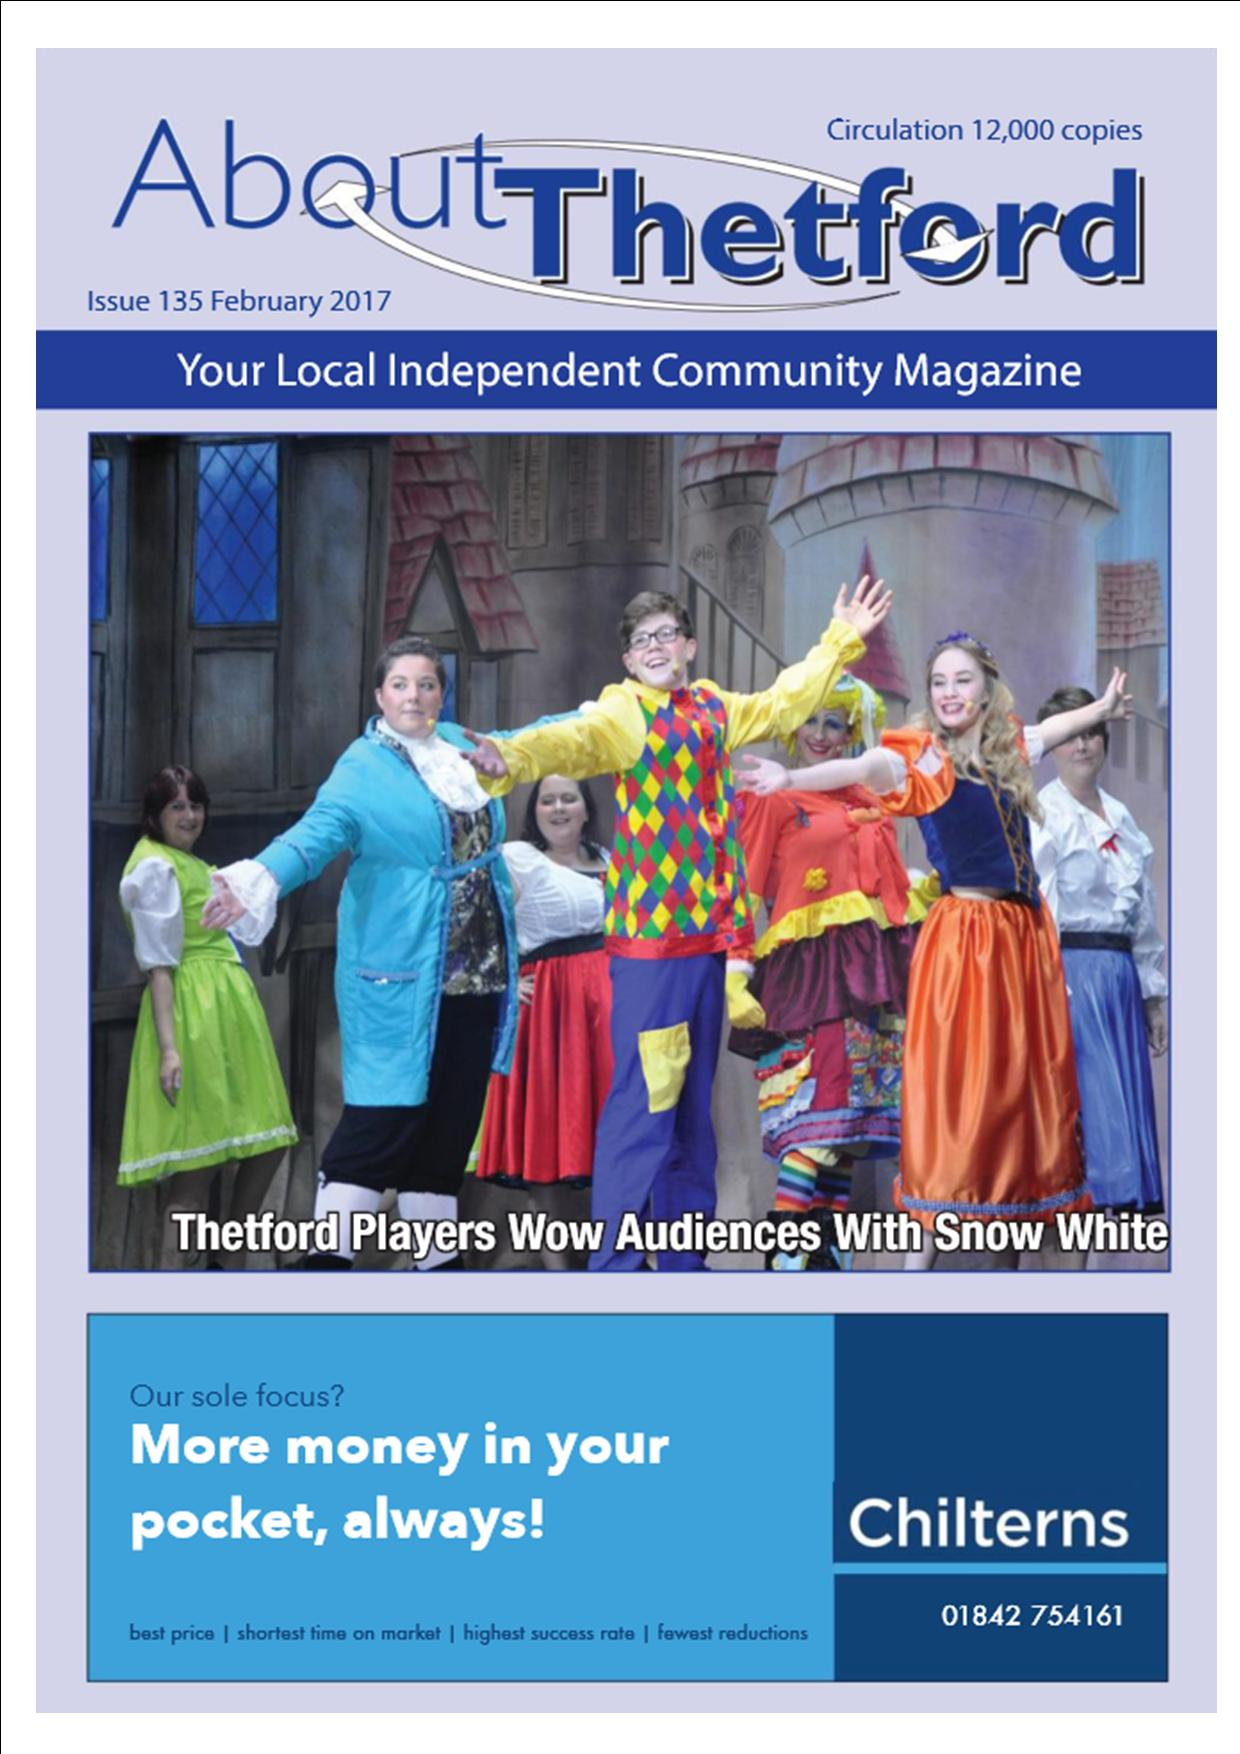 Thetford Players wow audiences with Snow White